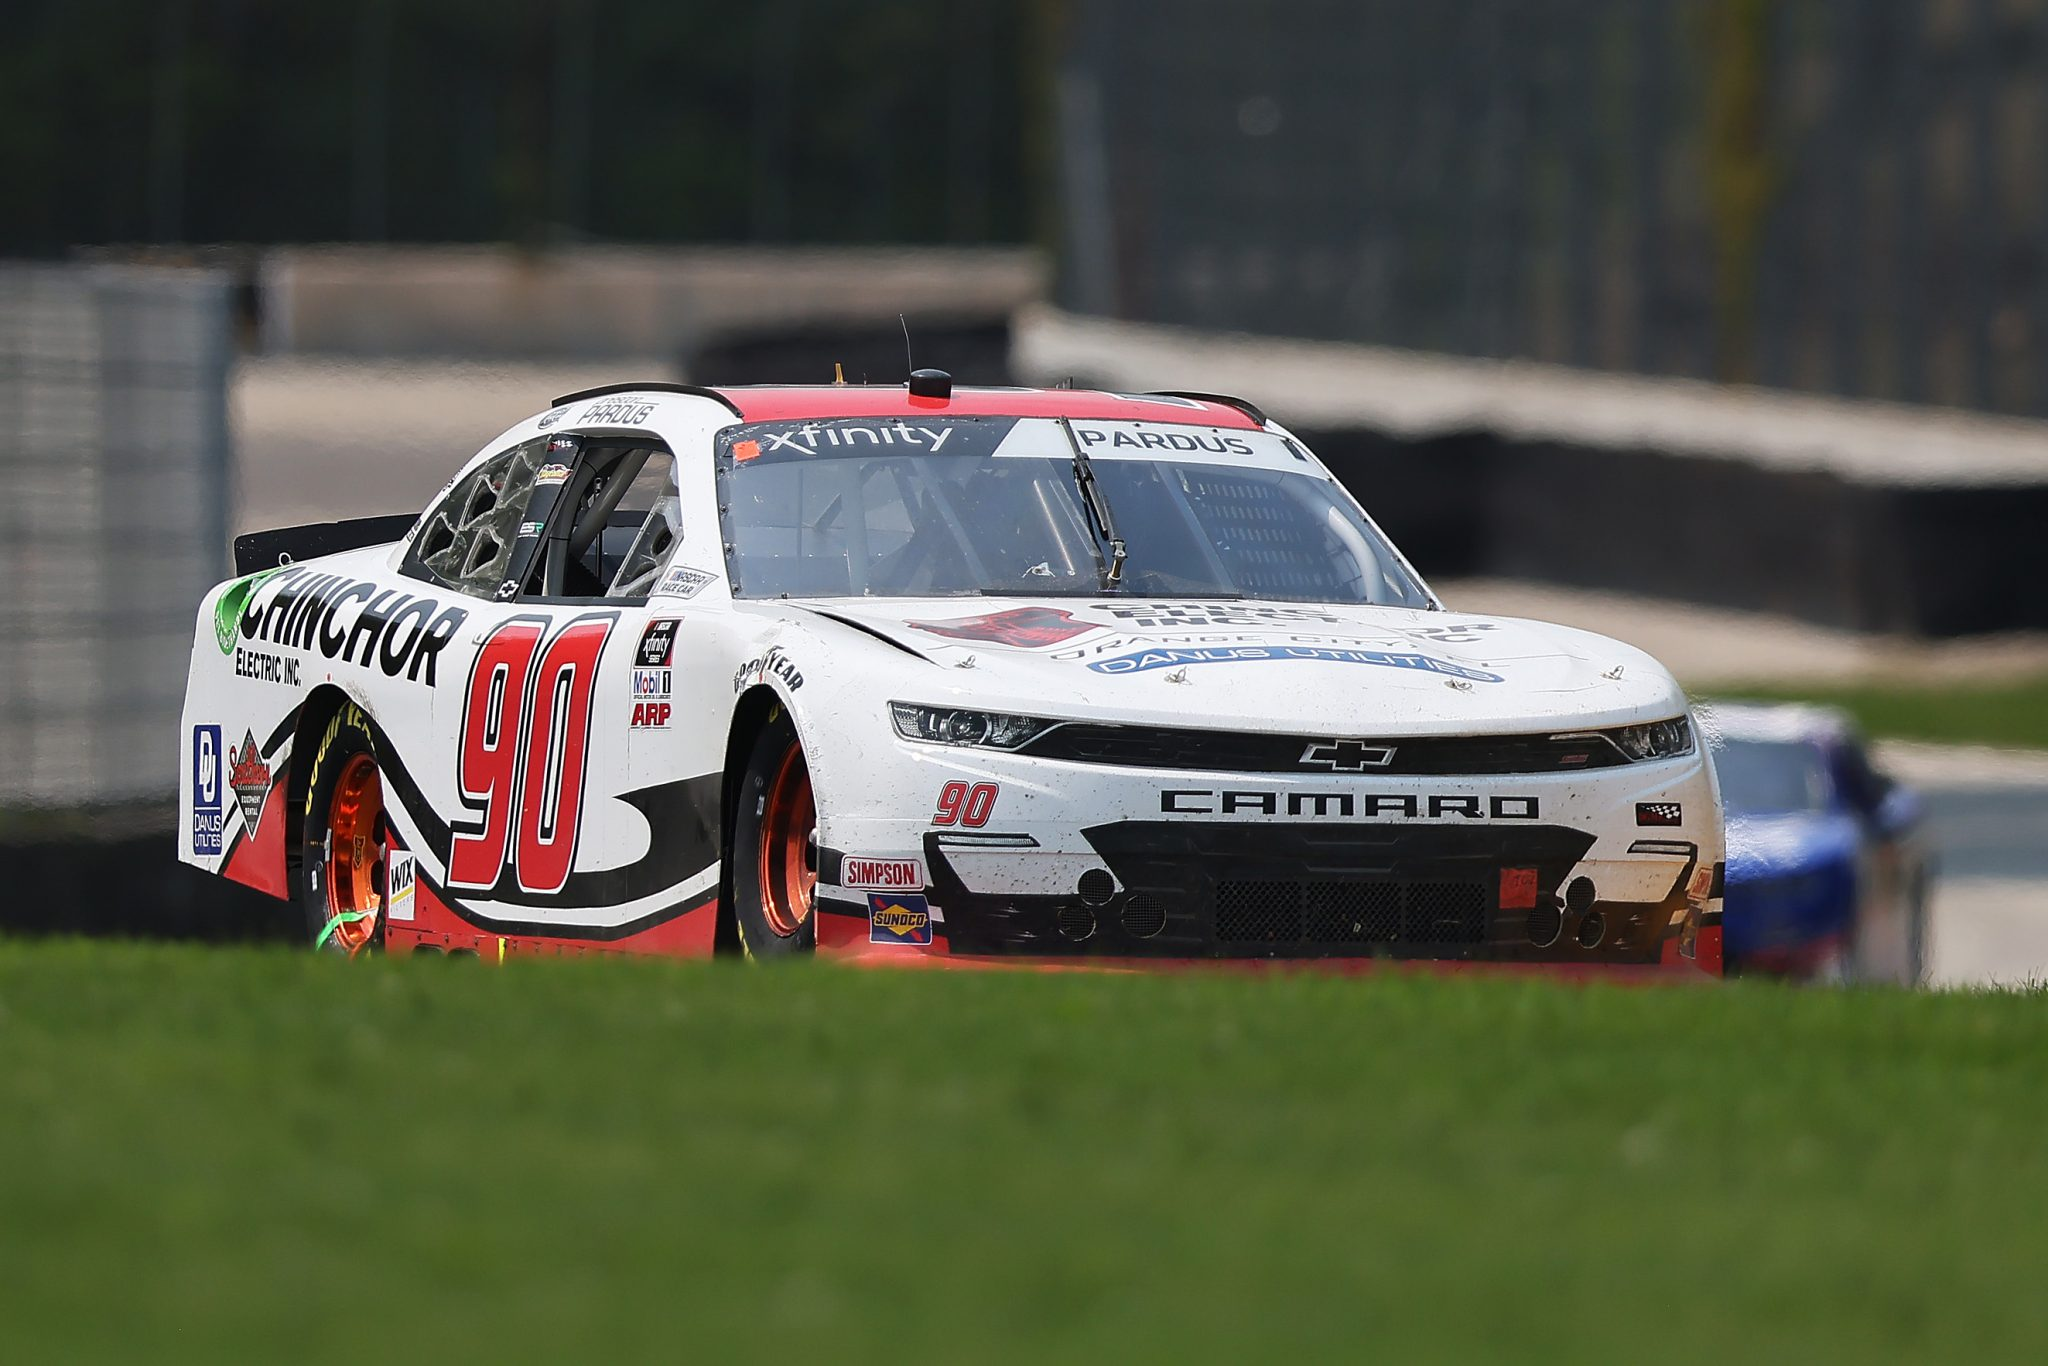 ELKHART LAKE, WISCONSIN - JULY 03: Preston Pardus, driver of the #90 Chinchor Electric/Danus Chevrolet, drives during the NASCAR Xfinity Series Henry 180 at Road America on July 03, 2021 in Elkhart Lake, Wisconsin. (Photo by James Gilbert/Getty Images) | Getty Images